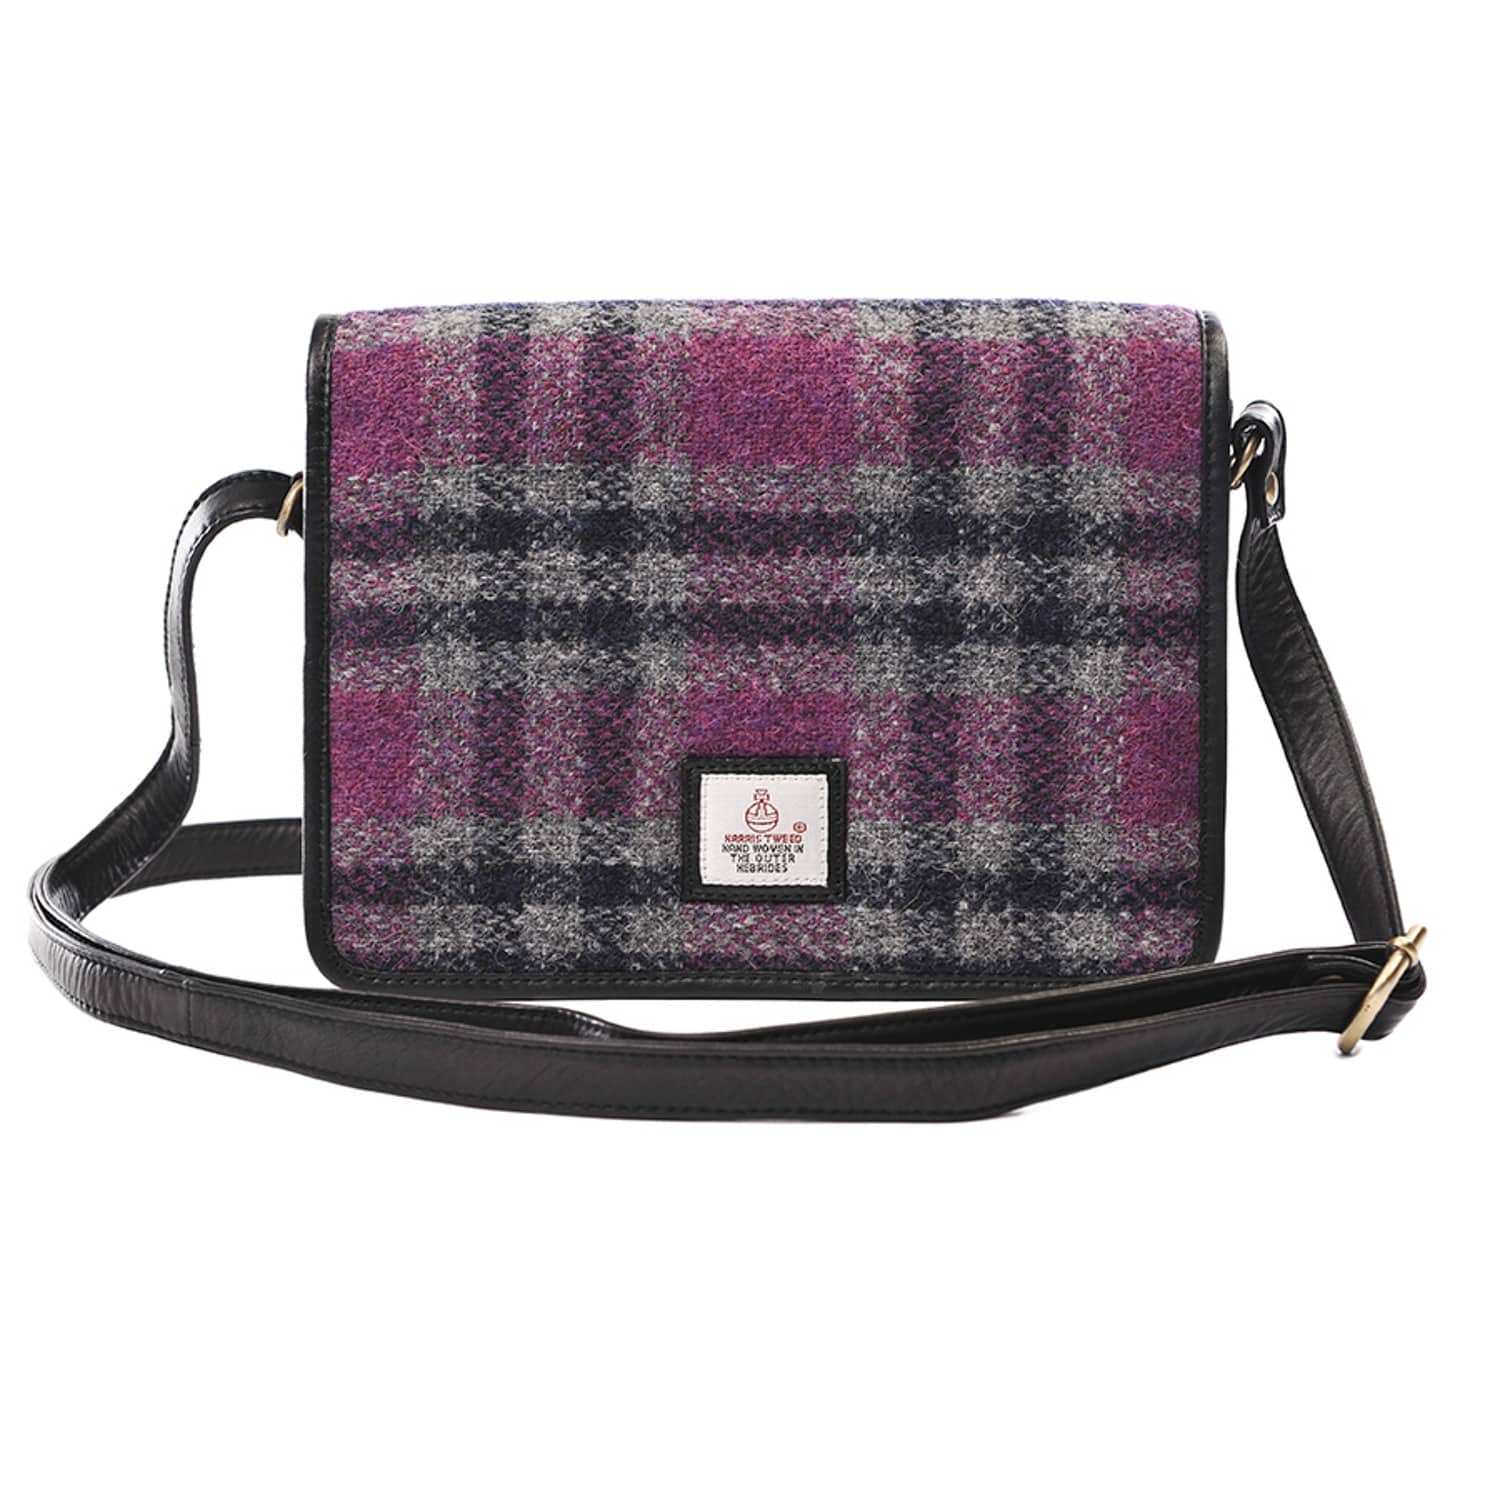 46f61f4a39e0 Pink Harris Tweed Cross Body Bag image